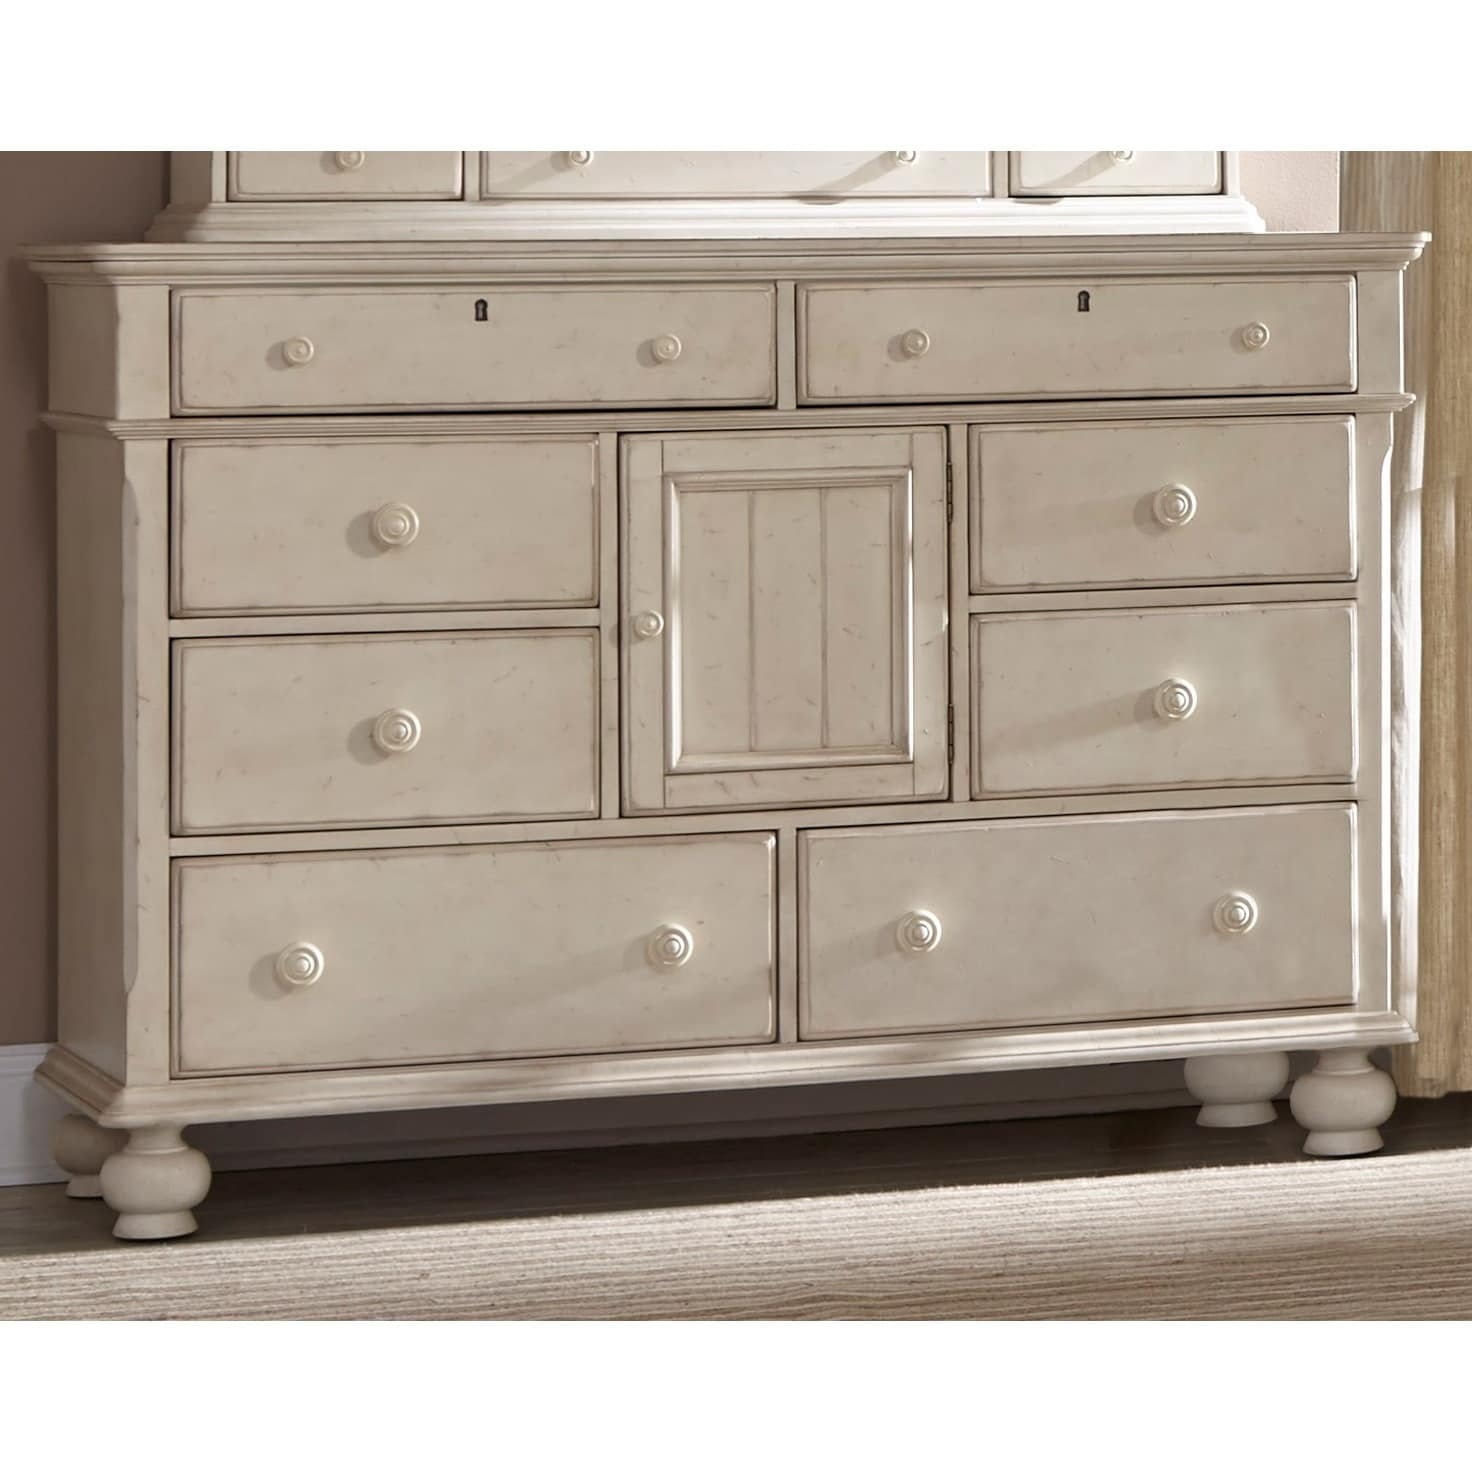 Laguna Antique White Dresser and Optional Mirror with Sto...